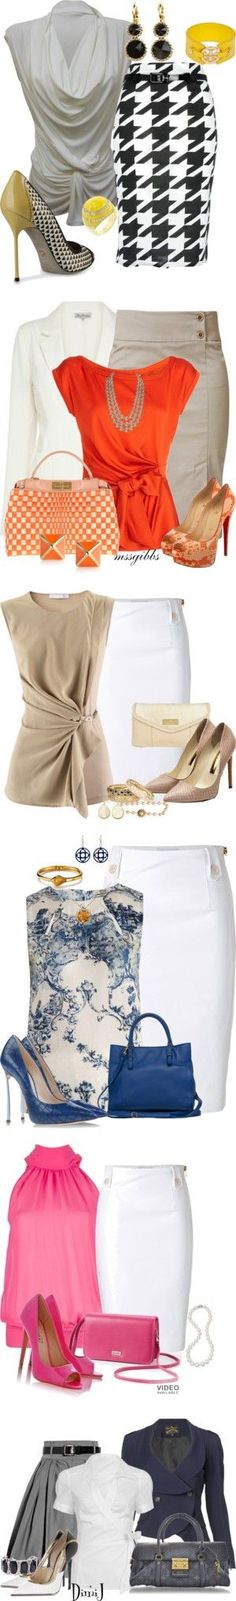 """9-5"" by zuckie1 on Polyvore"